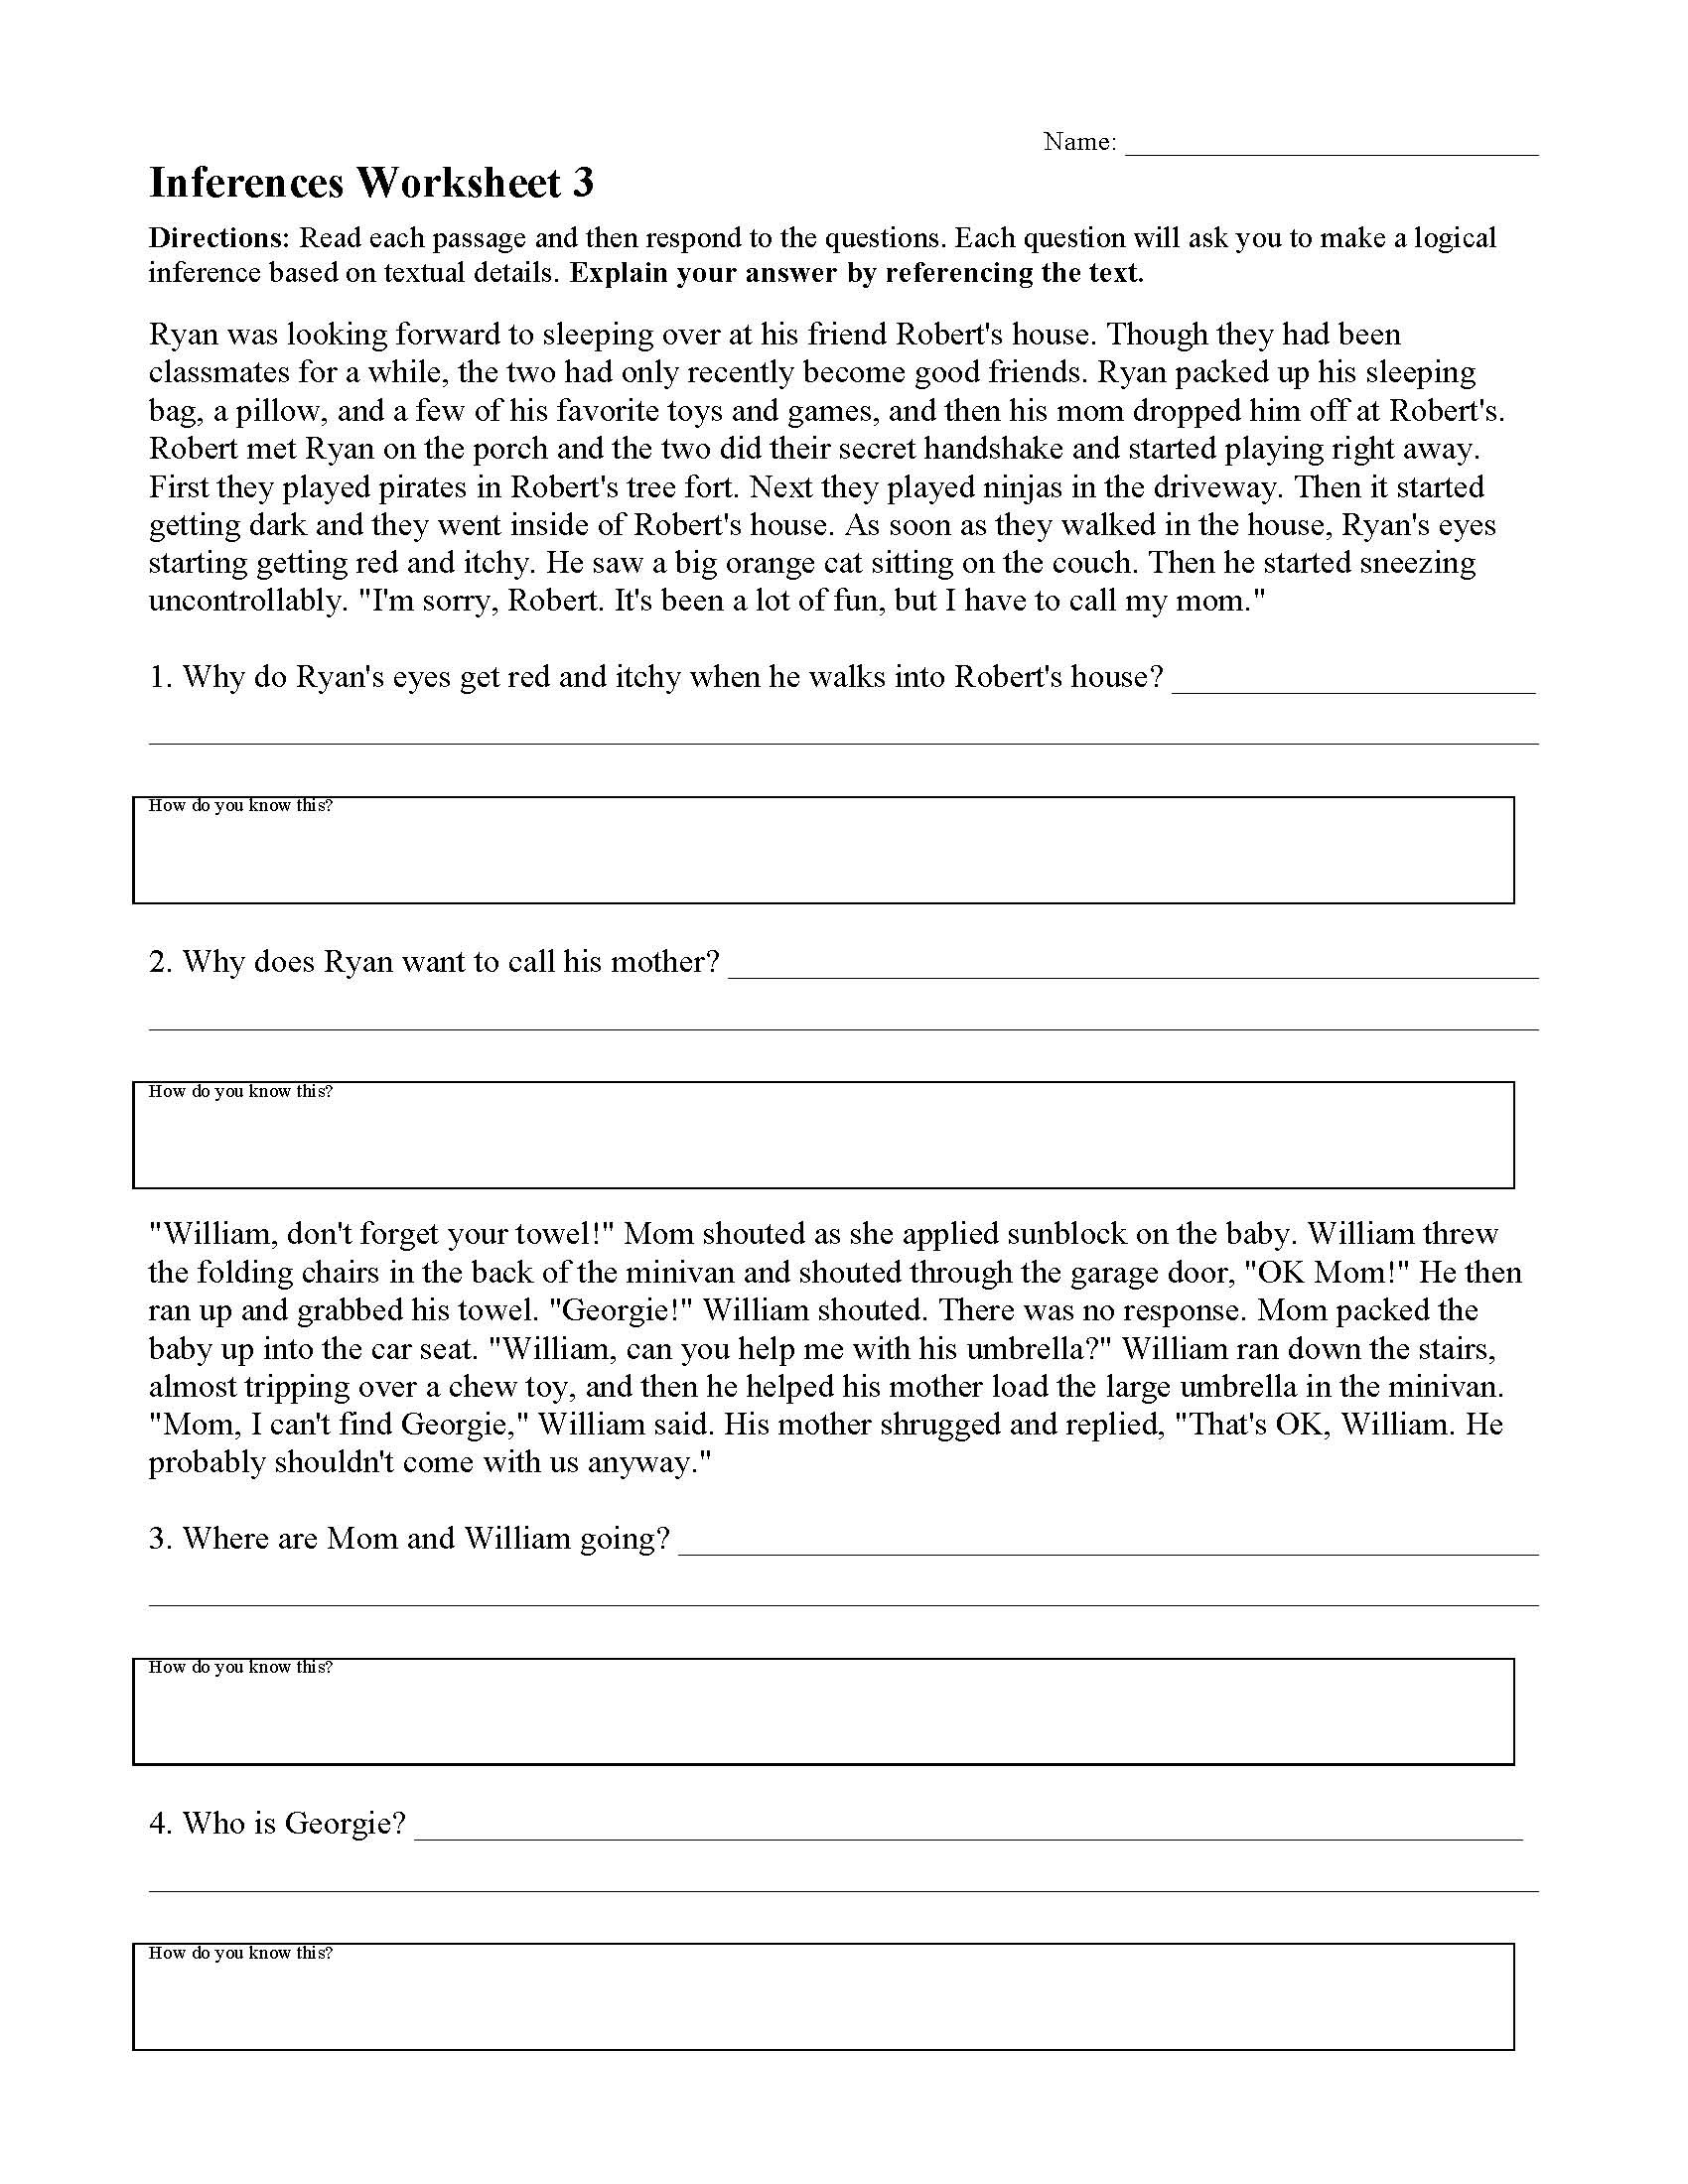 Drawing Conclusions Worksheets 4th Grade Inferences Worksheets